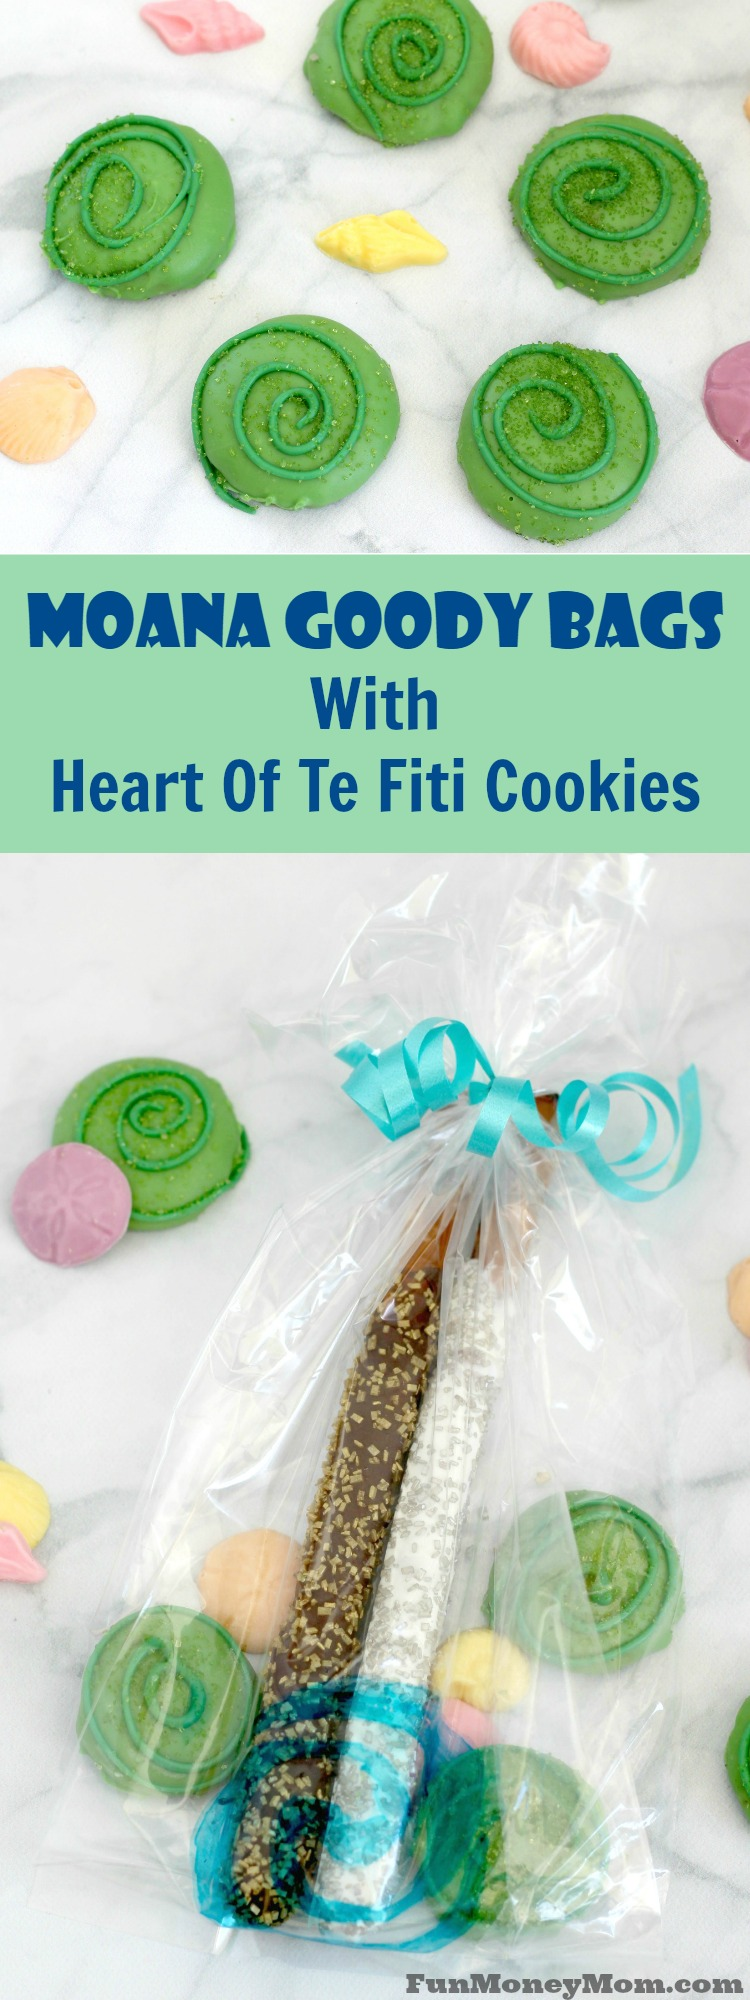 """These Moana goody bags are perfect for your Moana party with Heart of Te Fiti cookies and """"shiny"""" stuff for Tamatoa the crab!"""